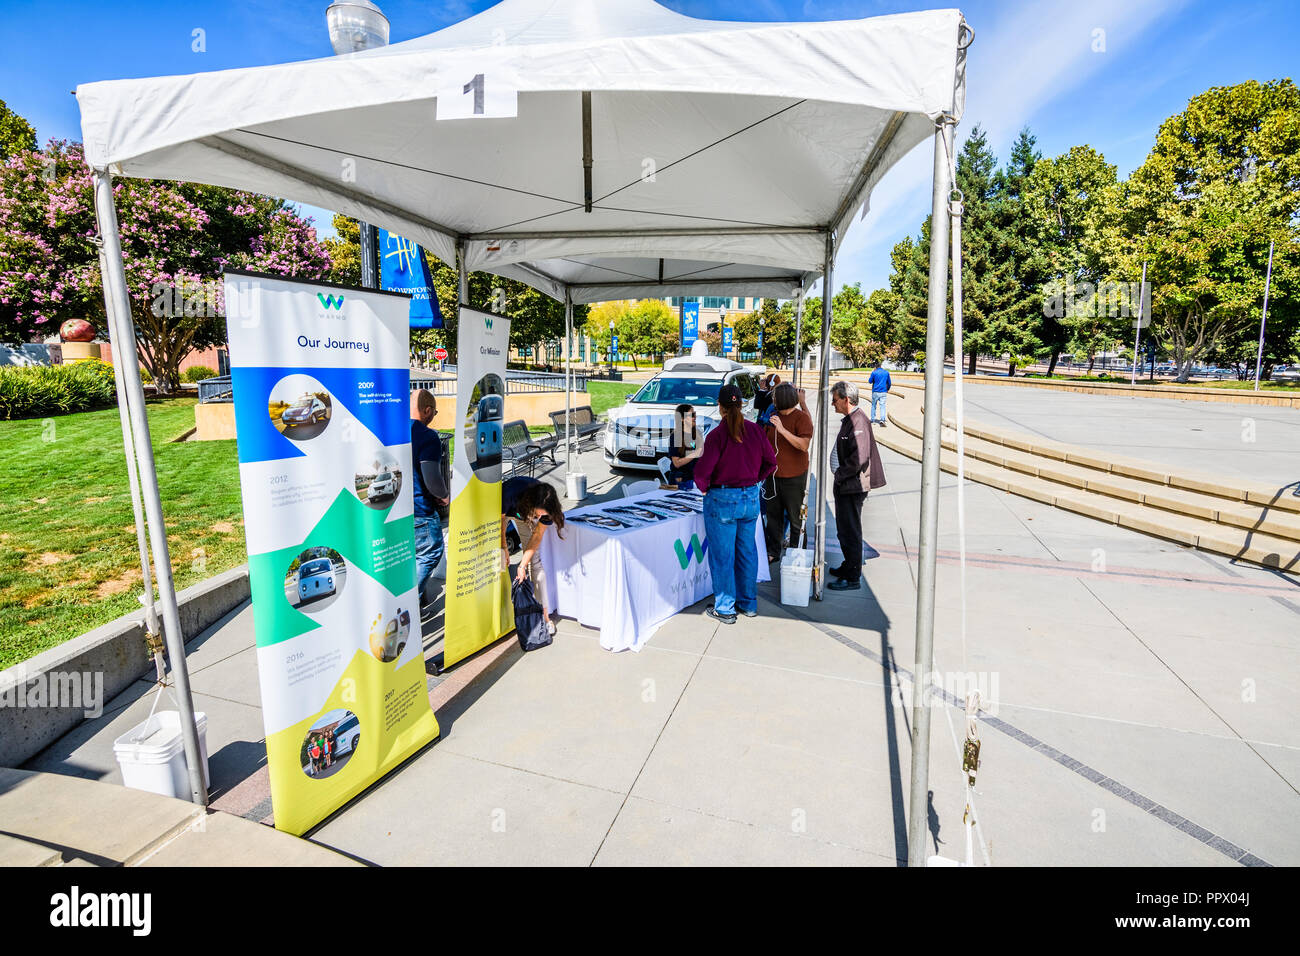 September 27, 2018 Sunnyvale / CA / USA - Representatives from Waymo talk to visitors at 'Sunnyvale Technology Business Expo' in Silicon Valley - Stock Image